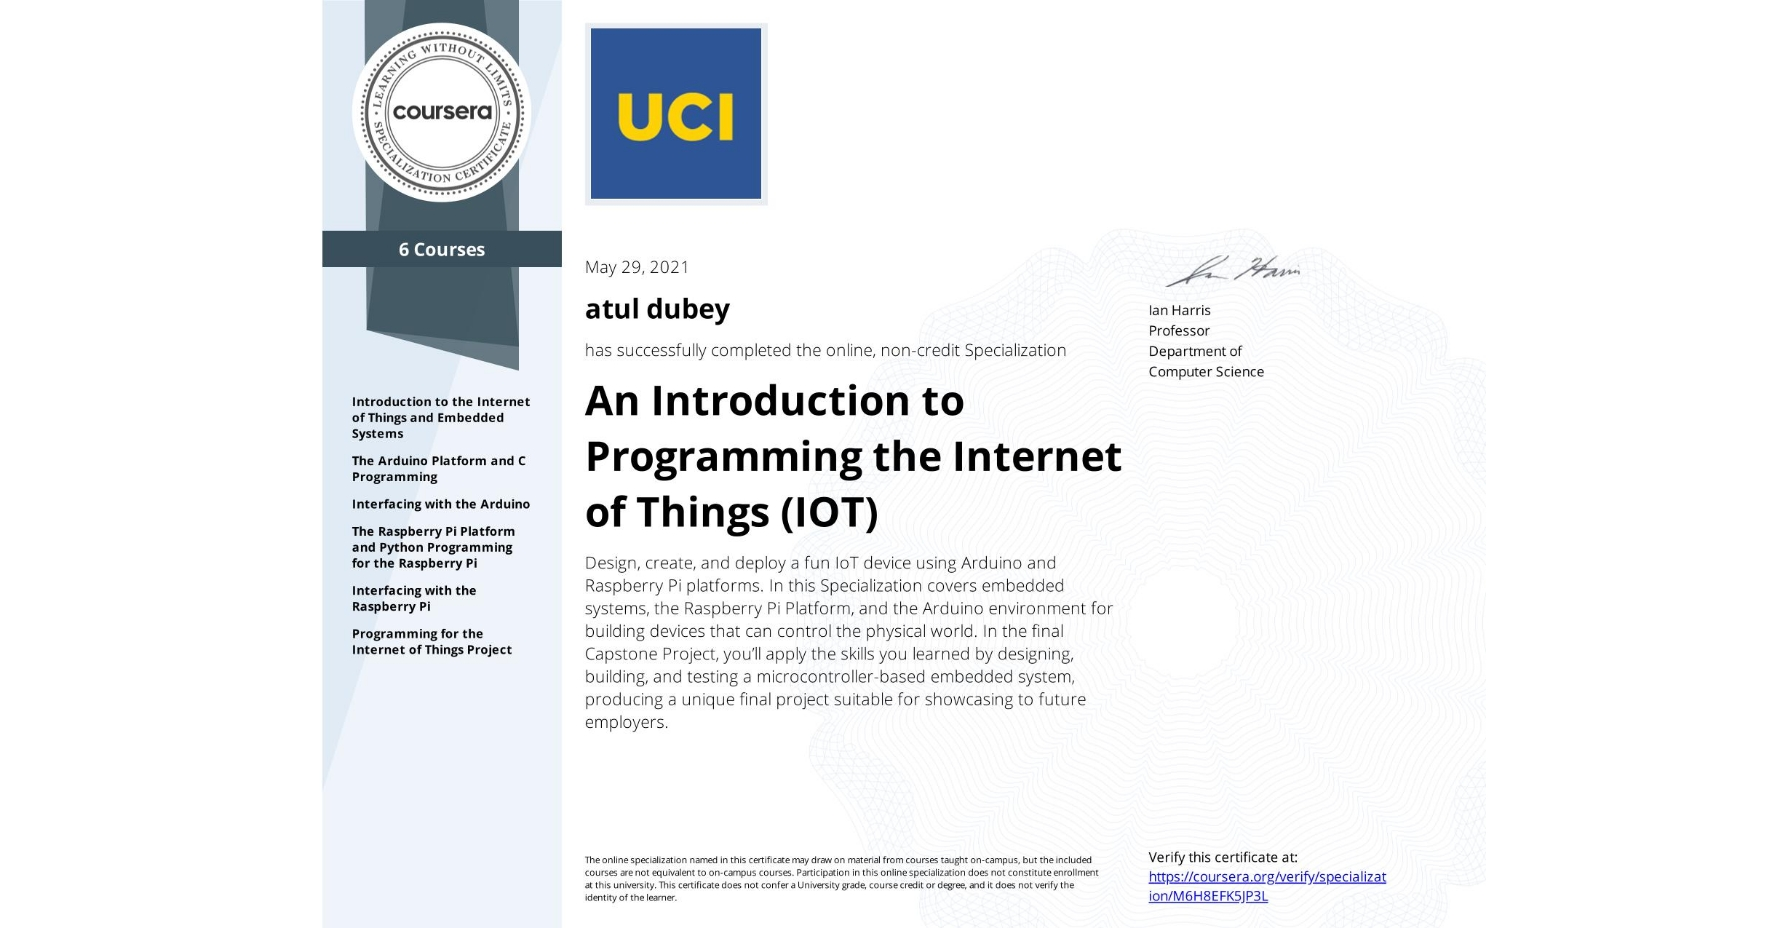 View certificate for atul dubey, An Introduction to Programming the Internet of Things (IOT), offered through Coursera. Design, create, and deploy a fun IoT device using Arduino and Raspberry Pi platforms.  In this Specialization covers embedded systems, the Raspberry Pi Platform, and the Arduino environment for building devices that can control the physical world. In the final Capstone Project, you'll apply the skills you learned by designing, building, and testing a microcontroller-based embedded system, producing a unique final project suitable for showcasing to future employers.